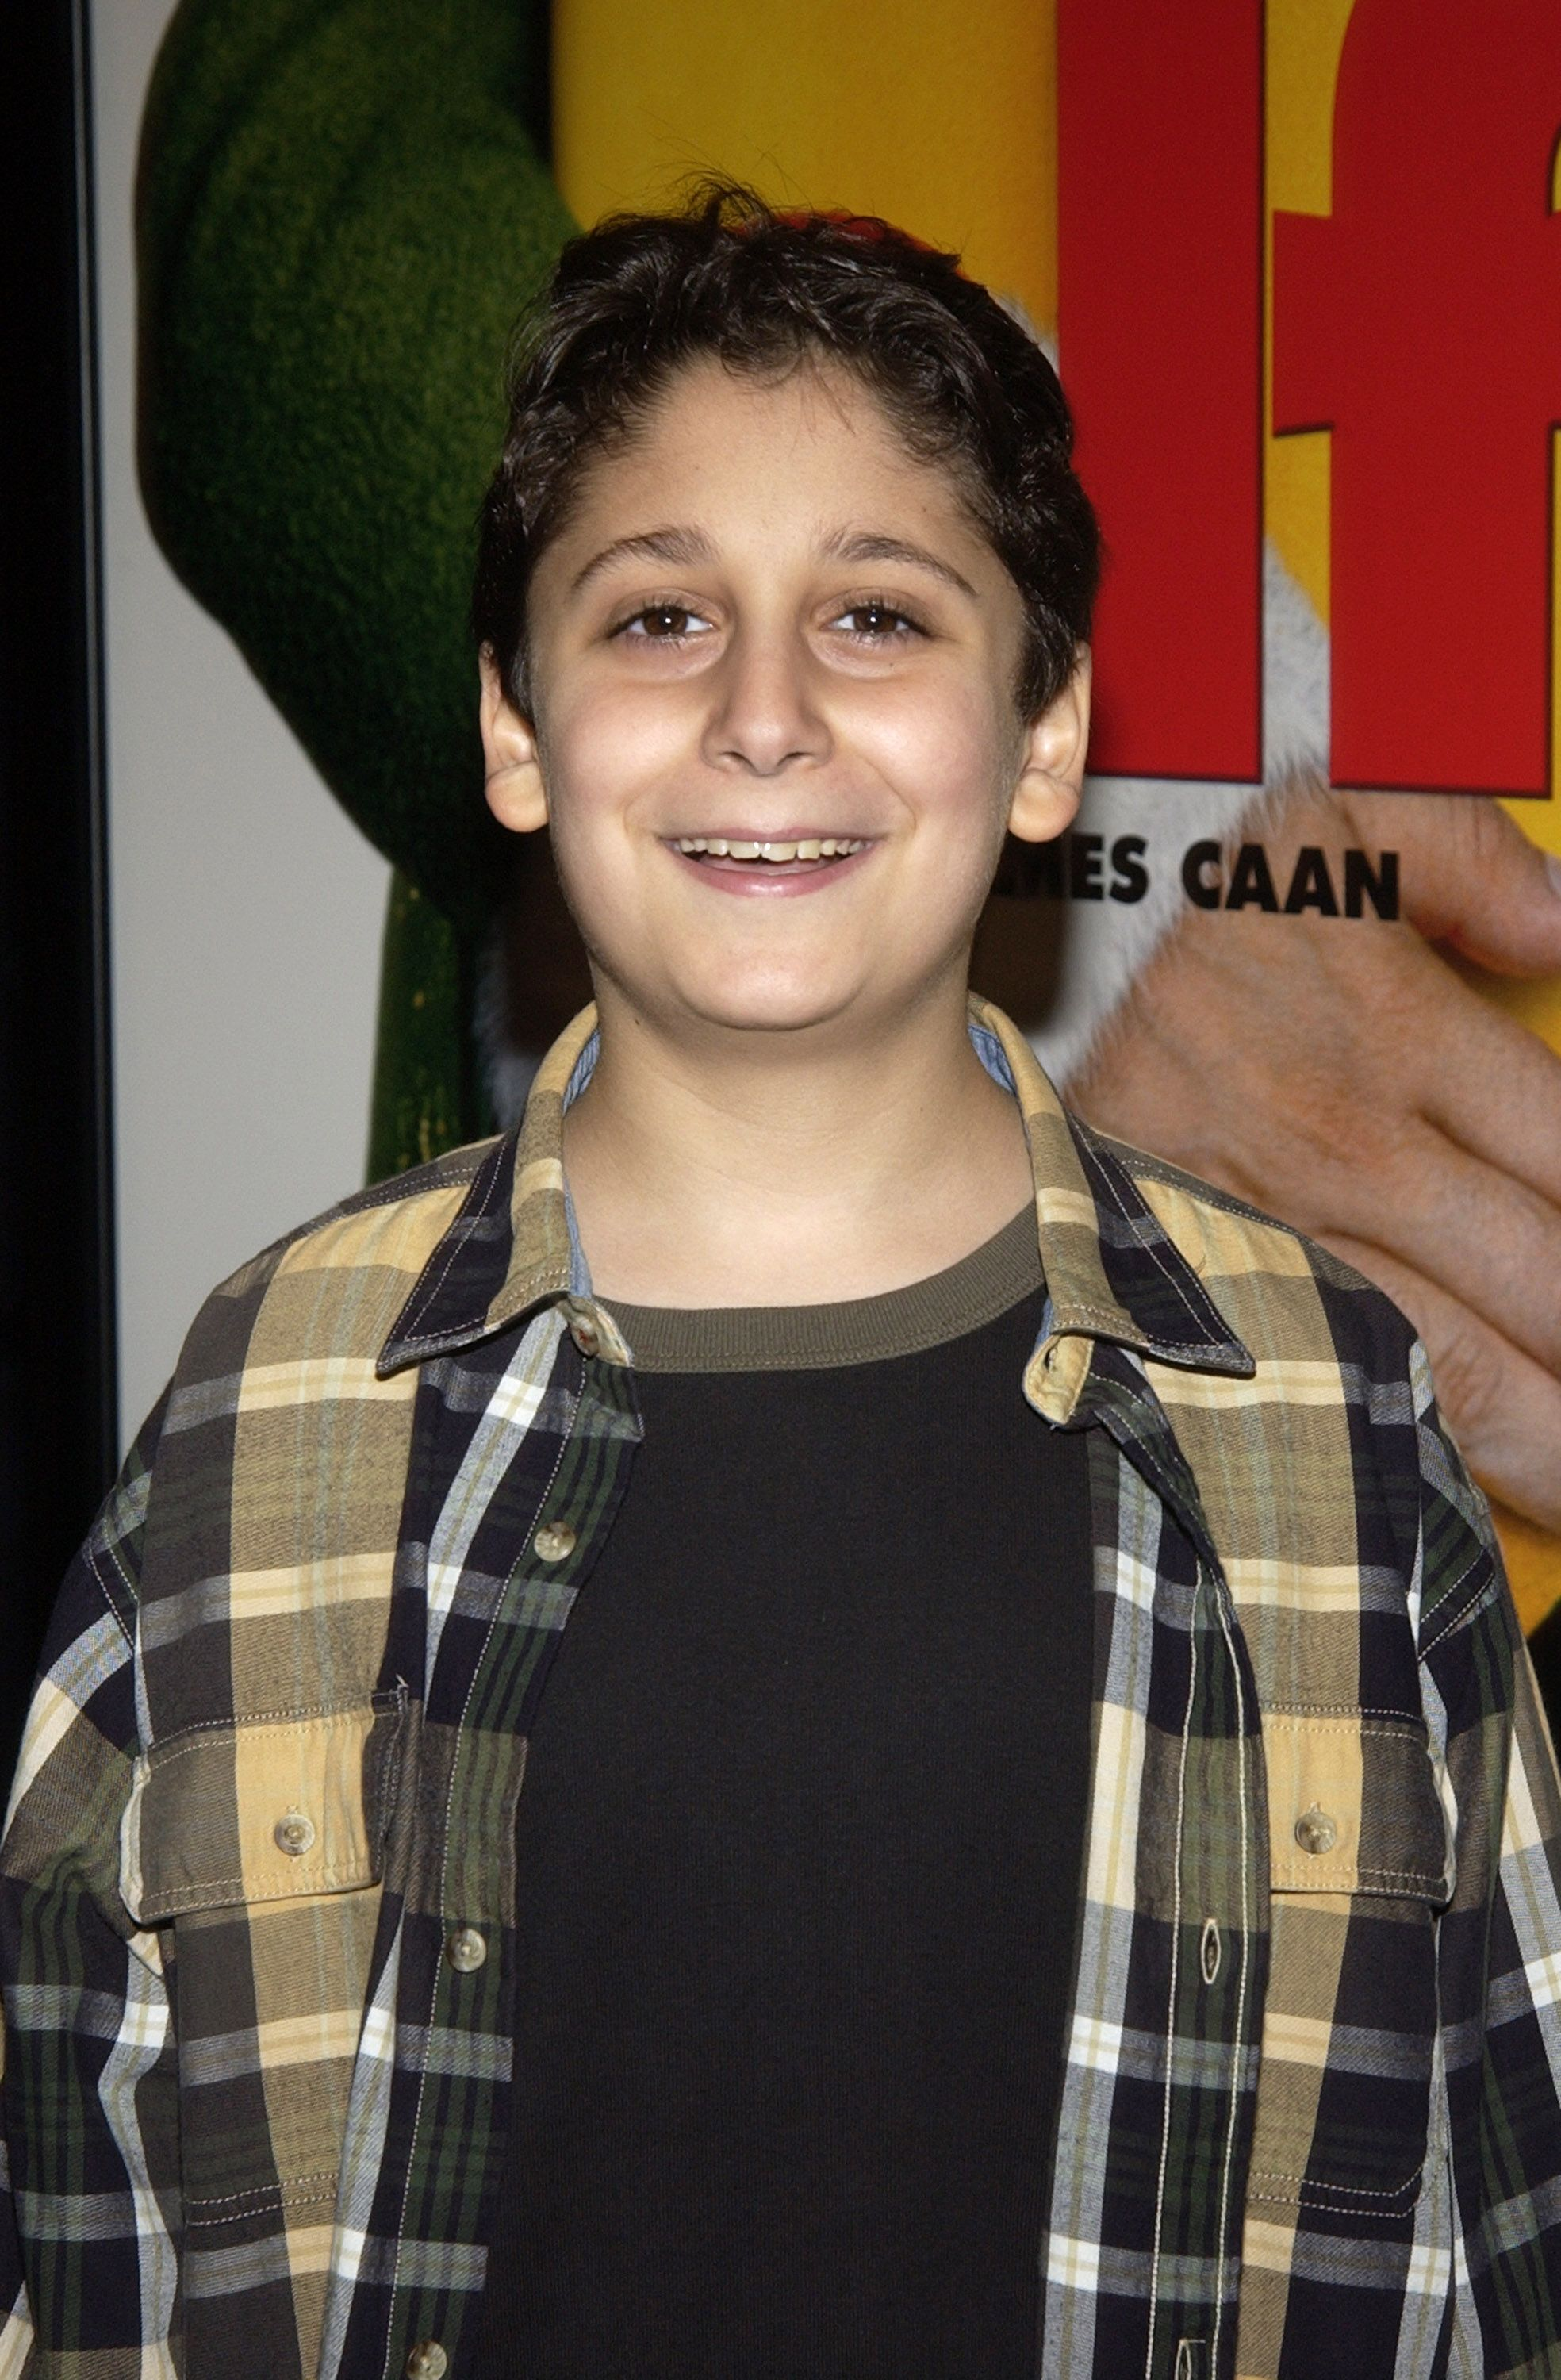 This Is What The Kid From Elf Looks Like These Days - Heres what success kid looks like now hes all grown up